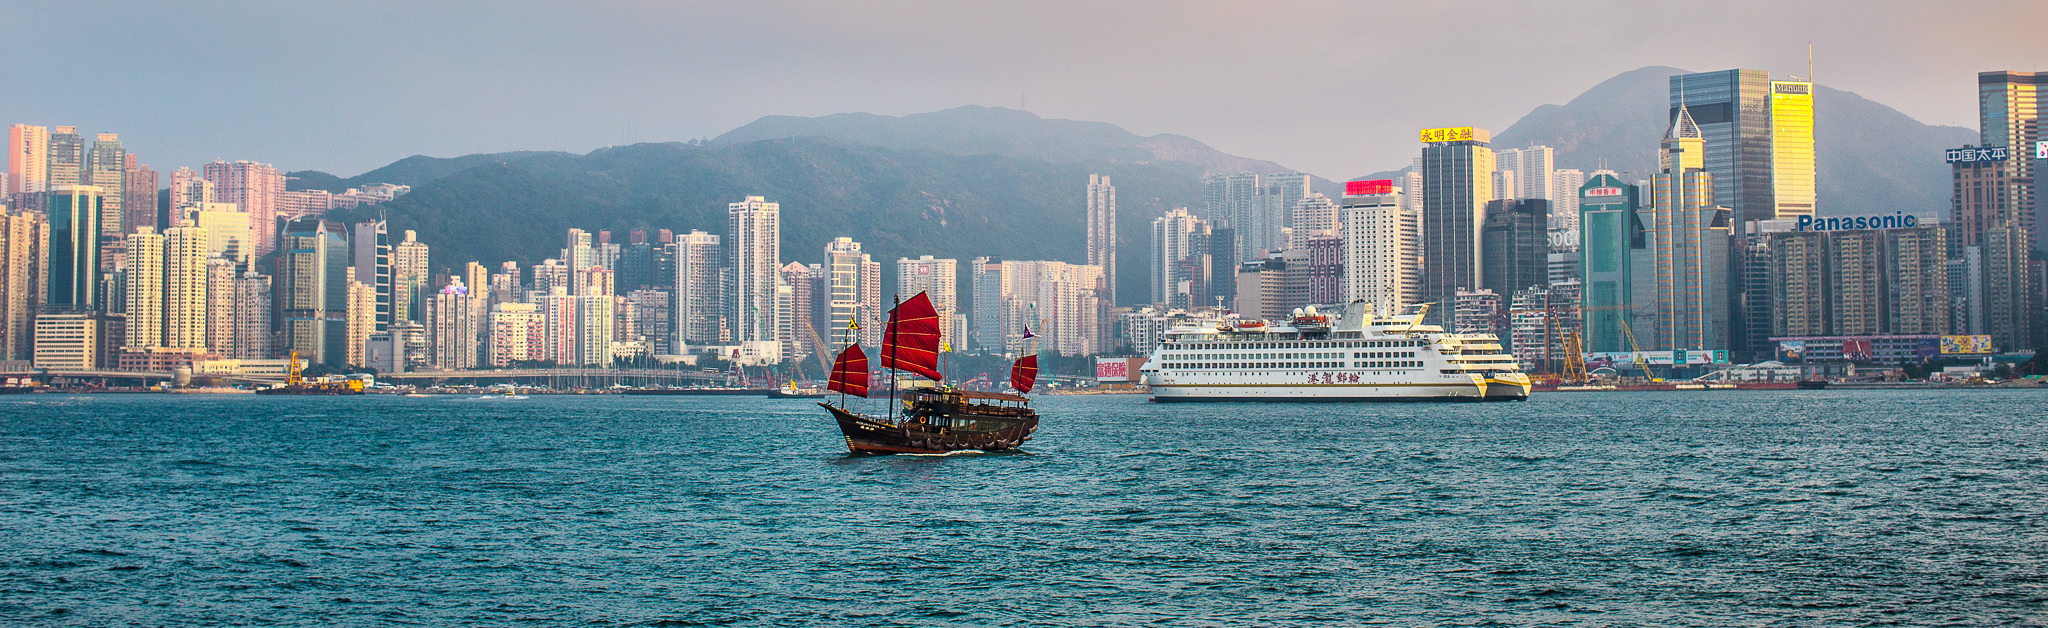 hong kong skyline - travel and lifestyle photography